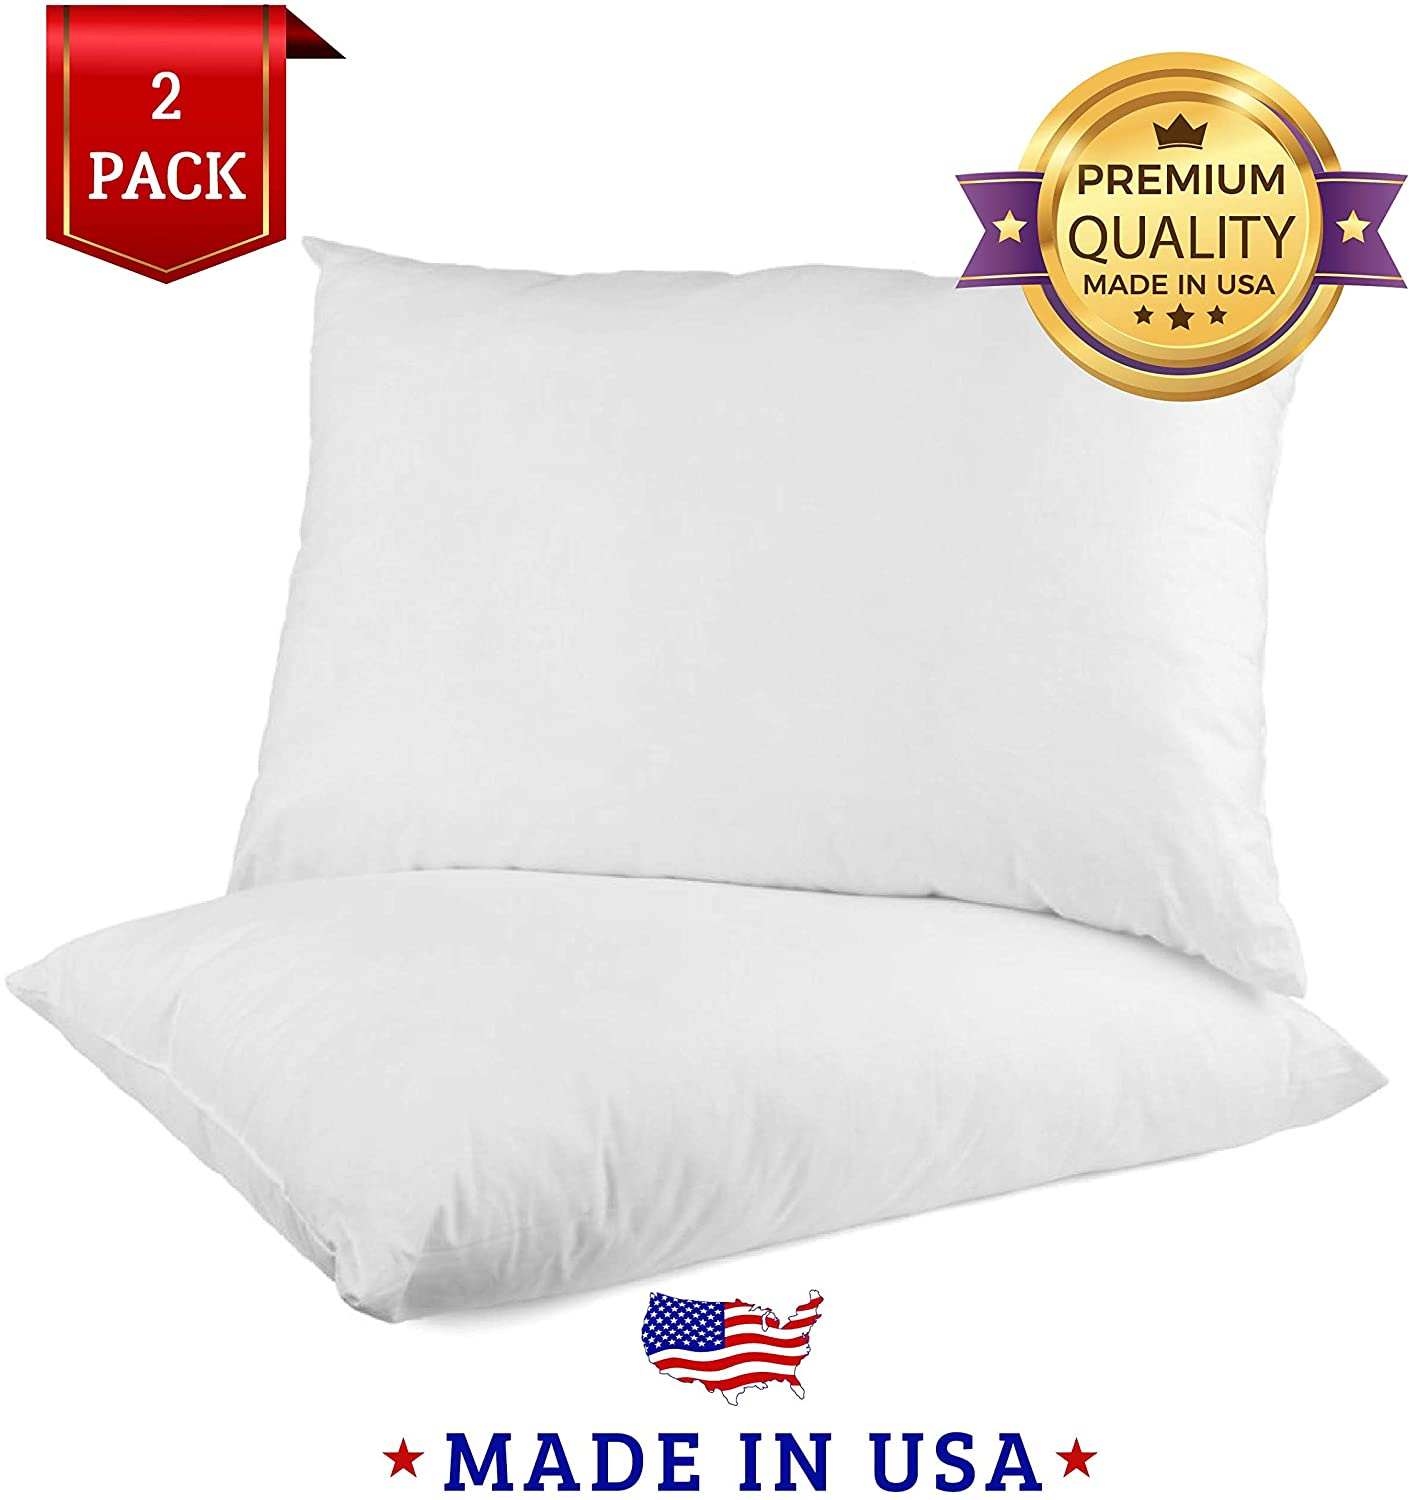 Looms & Linens Hotel Quality Pillow (2 Pack) - Luxury Hotel Pillows, Machine Washable, Hypoallergenic (King Size 20x36)